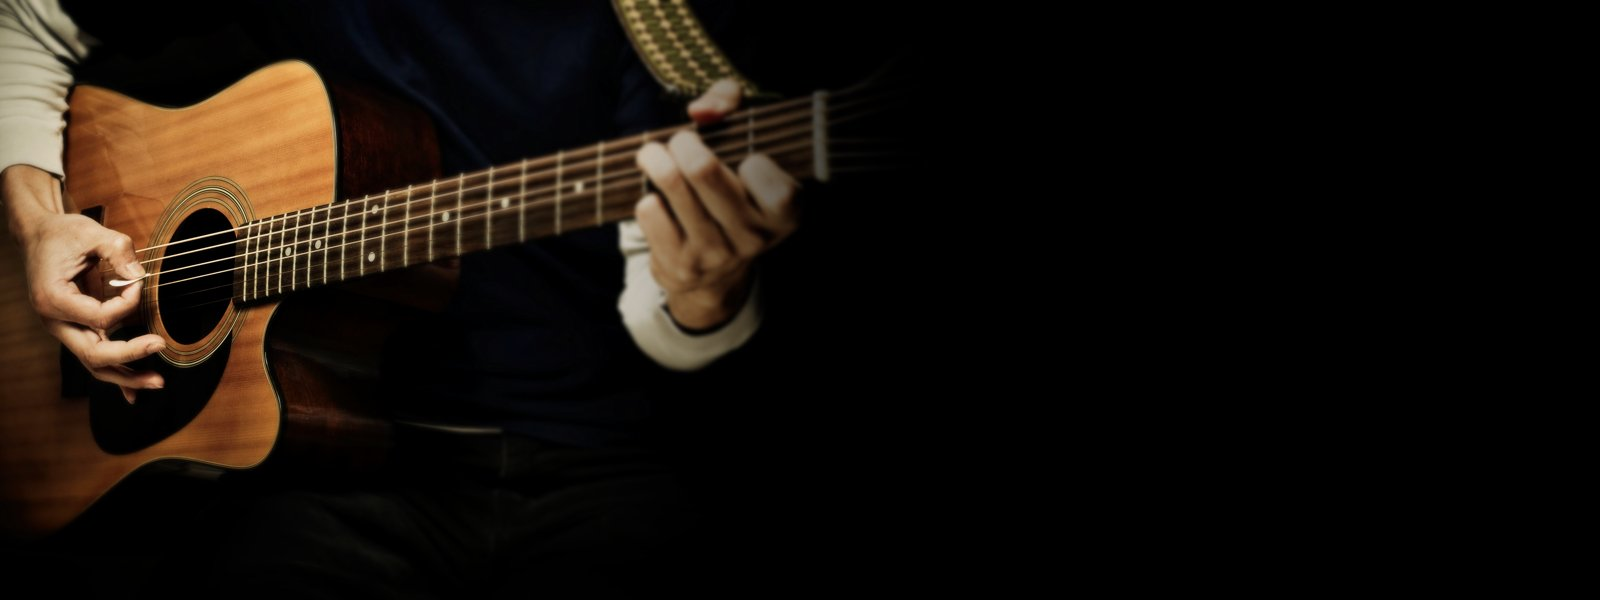 img-ce-background-strummed_acoustic_overview_02_in_session-3b215f579b0e43ffe2238a15b0a70e72-d